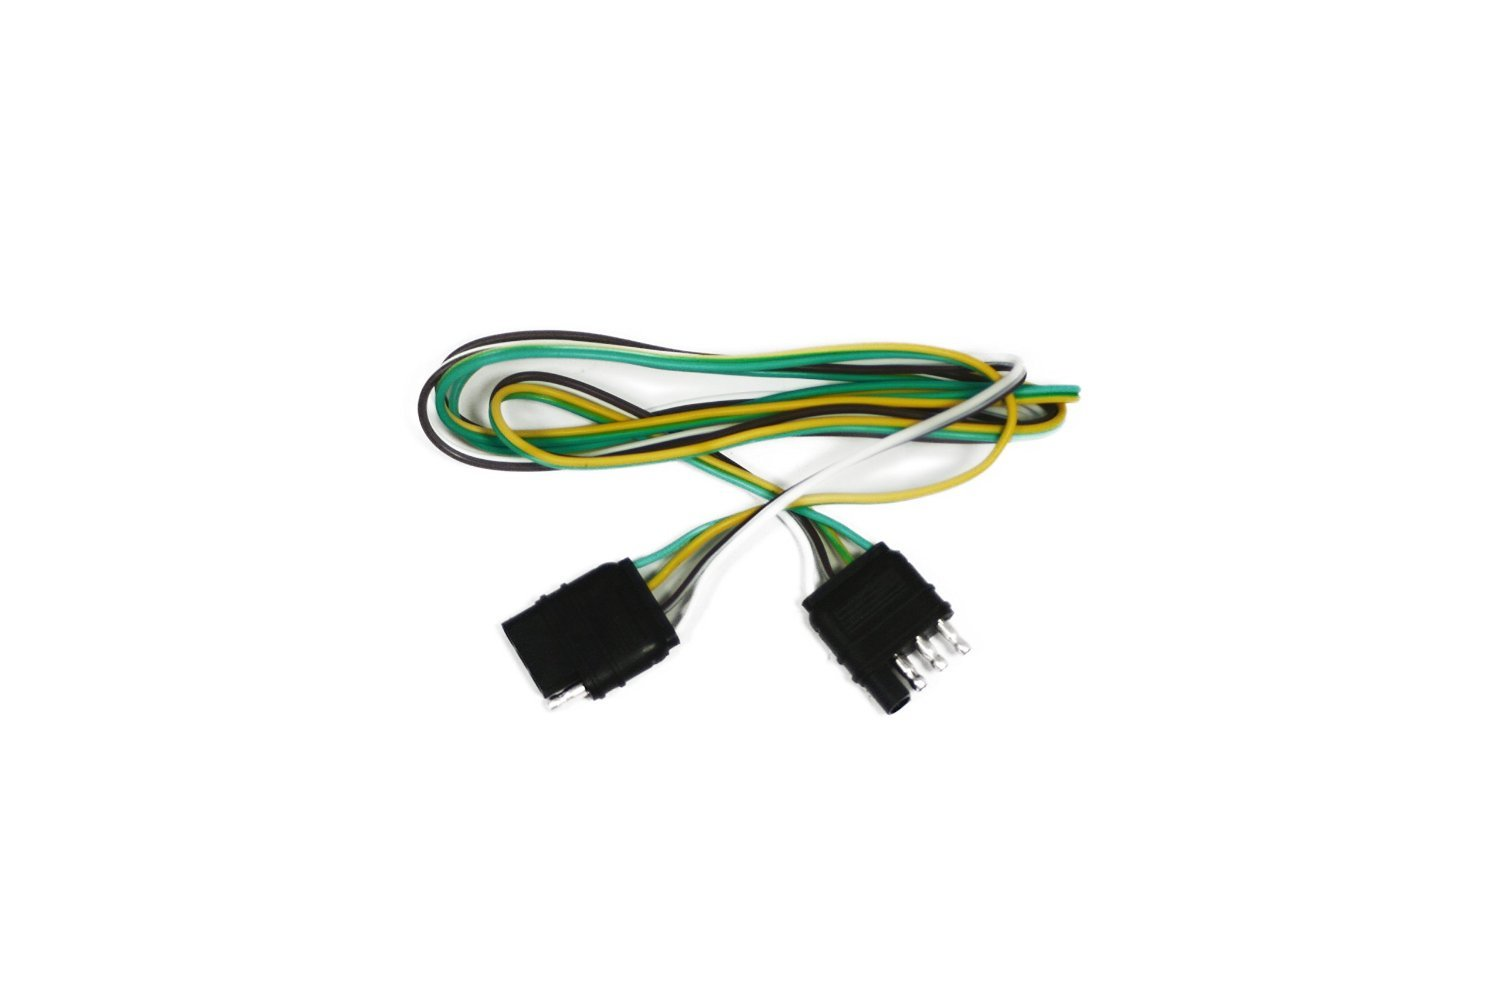 Abn Trailer Wire Extension 10 Foot 4 Way Pin Plug Electrical How Should The Lights For A Be Hooked Up Flat 20 Gauge Hitch Light Wiring Harness Extender Automotive